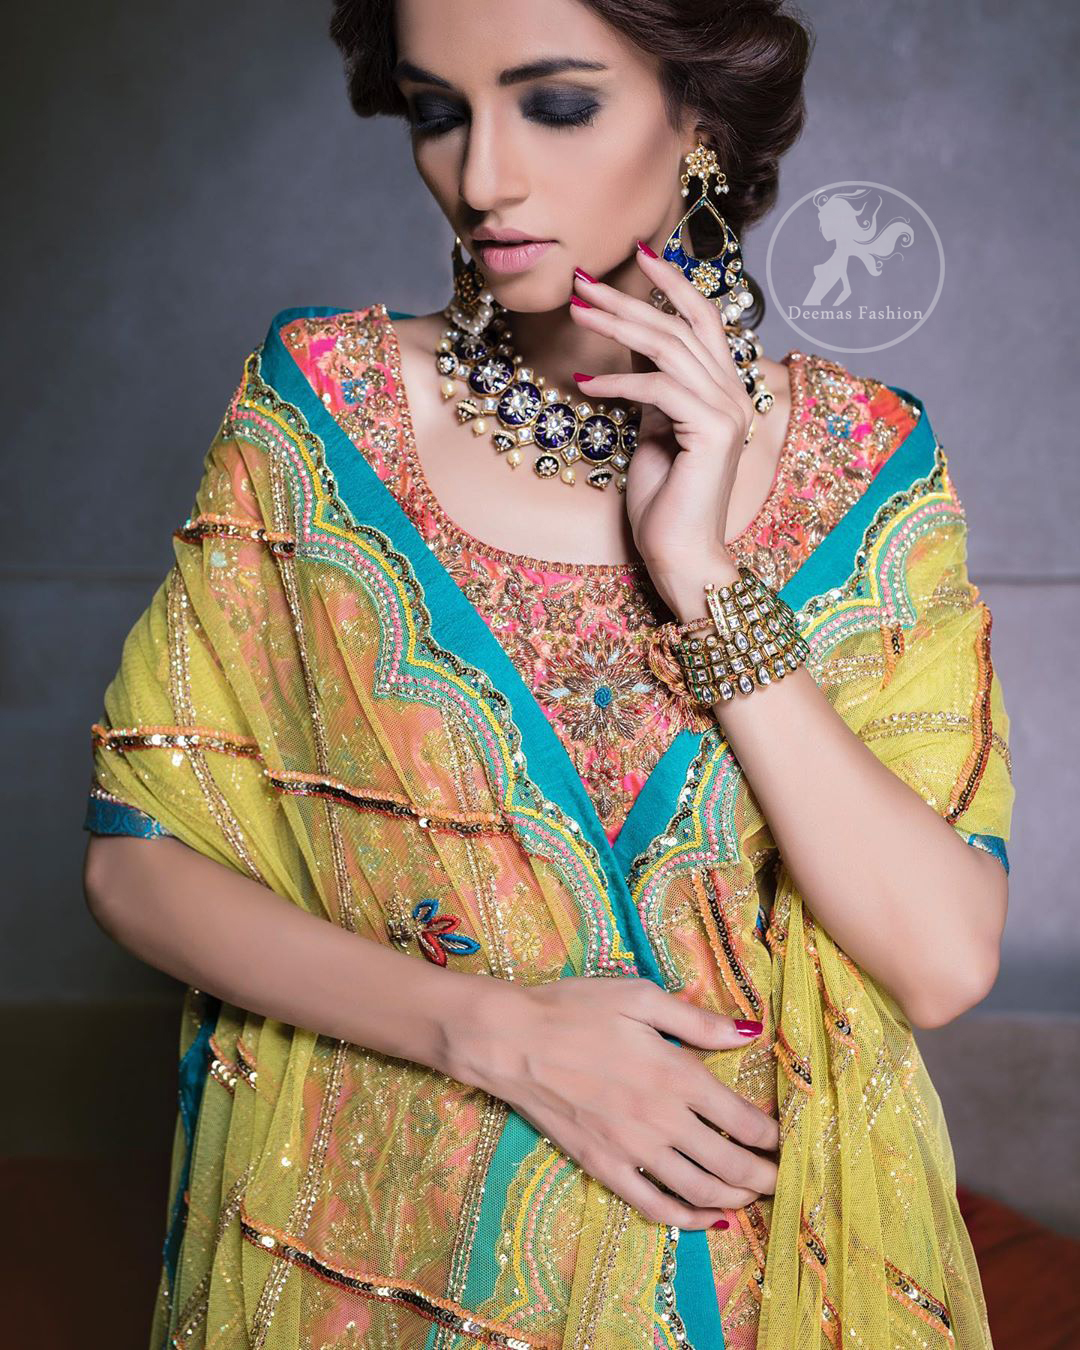 Our tea rose shirt with exquisite embellished neckline and back neckline in kora, dabka sequins and intricate thread work. The daaman is emphasized on intricate floral details that gives perfect ending to this shirt. It is coordinated with farshy gharara decorated with embroidery. The gradient turmeric dupatta has crisscross pattern and floral motifs scattered. It is finished with jamawar piping all around the edges.